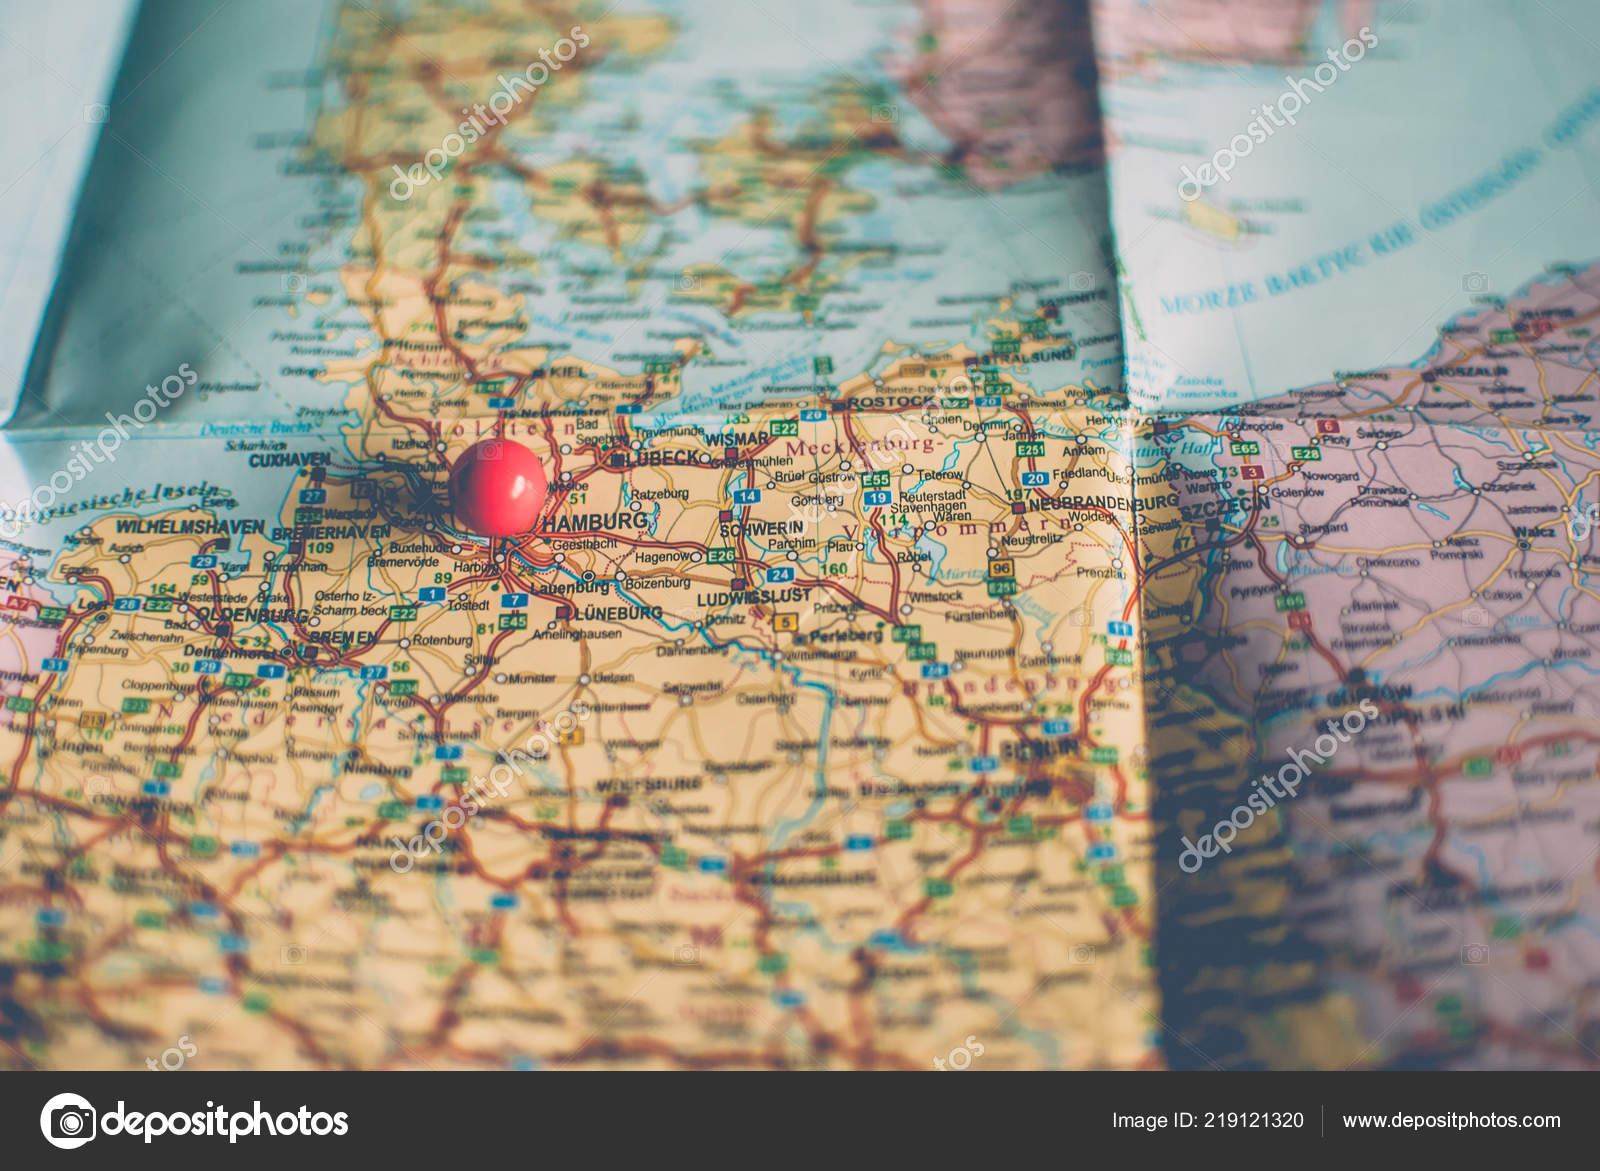 Picture of: Closeup Traveler Road Map Vintage Retro Colors Countries Cities Western Stock Photo C Yurii Zymovin 219121320